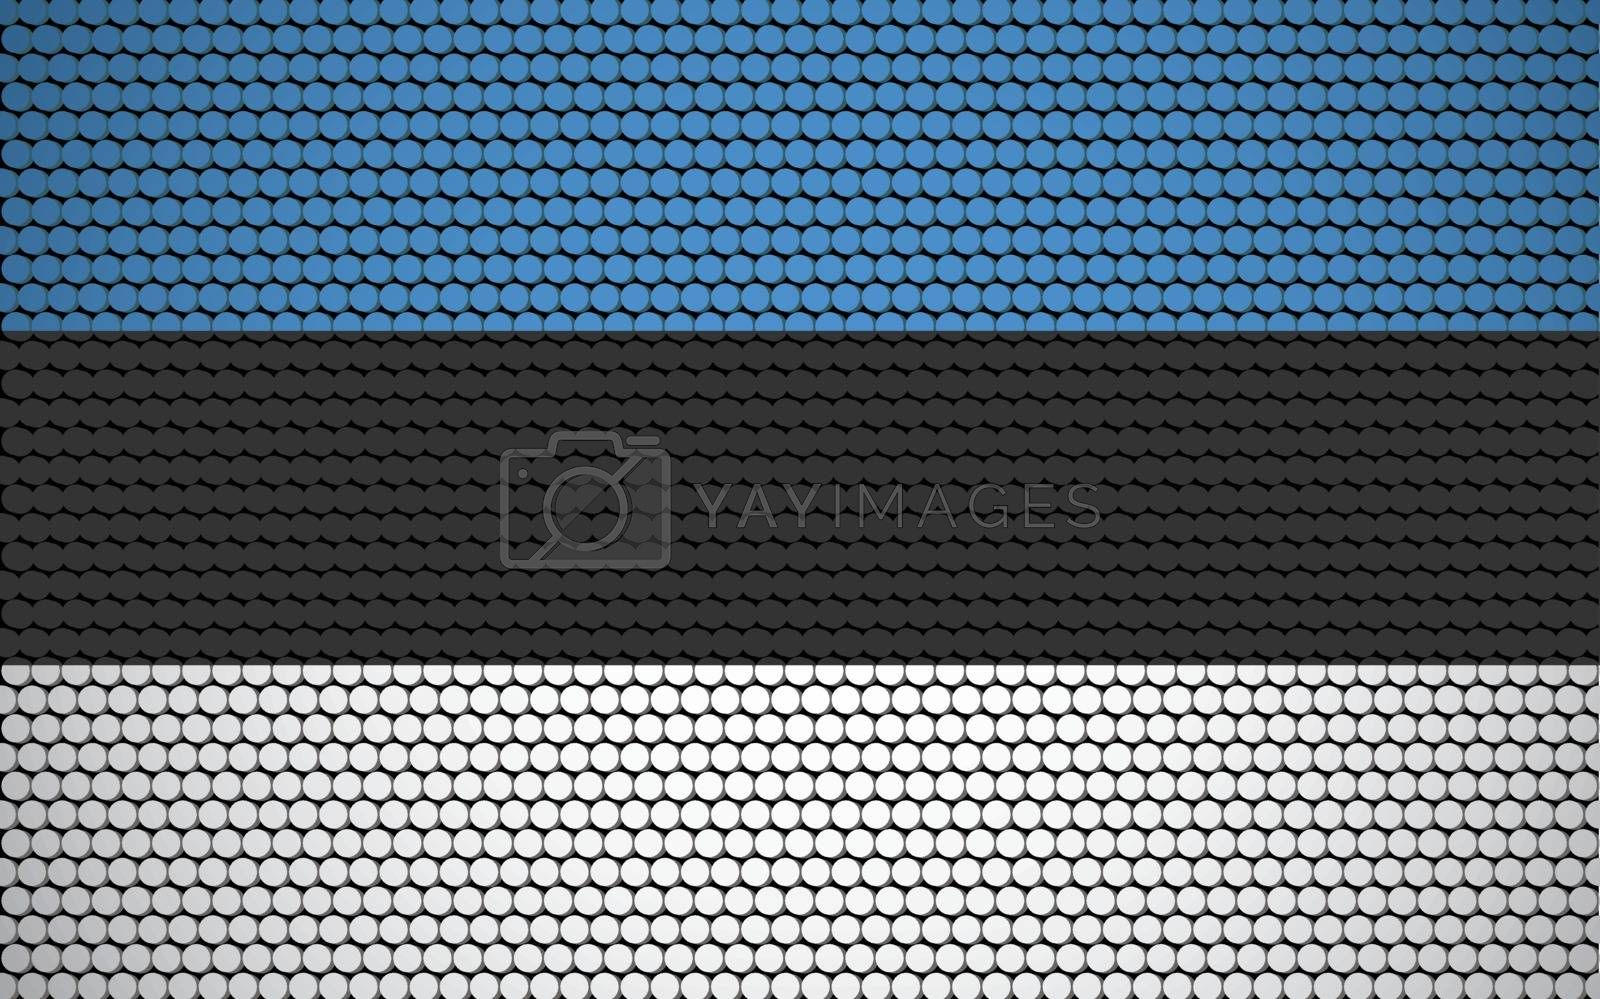 Abstract flag of Estonia made of circles. Estonian flag designed with colored dots giving it a modern and futuristic abstract look.